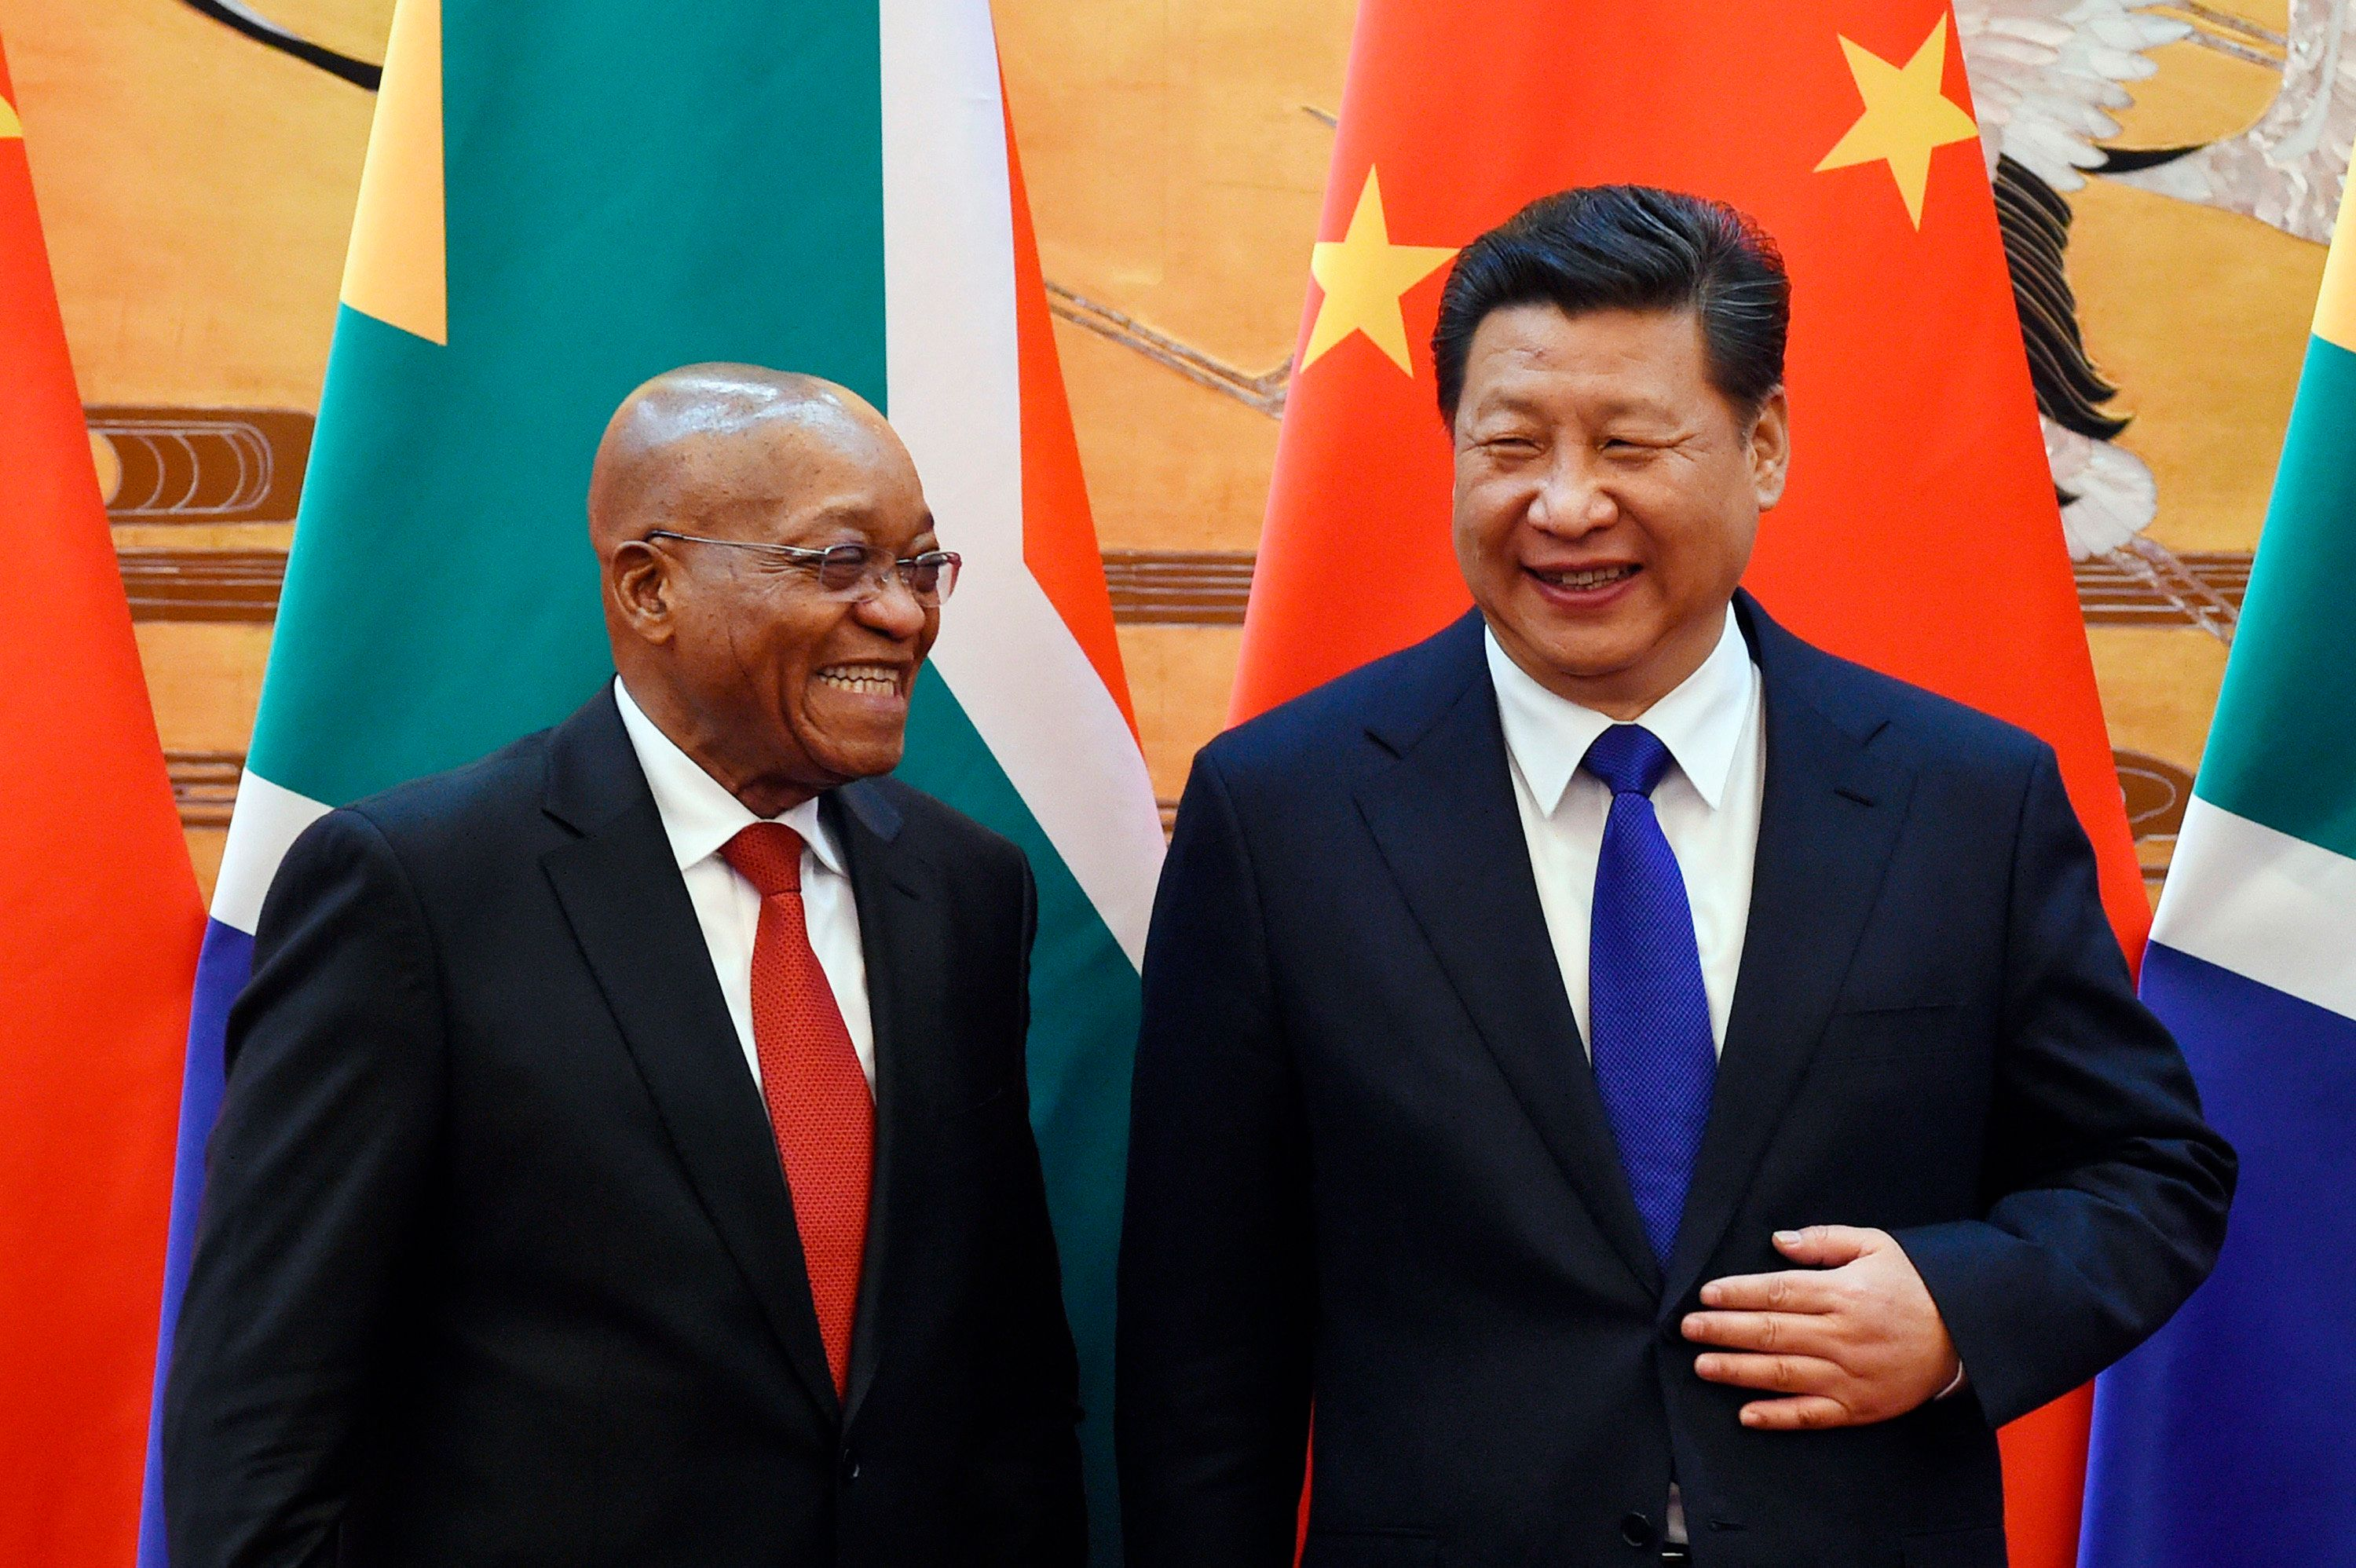 South African President Jacob Zuma (L) and Chinese President Xi Jinping share a laugh as they attend a signing ceremony at the Great Hall of the People in Beijing December 4, 2014. REUTERS/Wang Zhao/Pool (CHINA - Tags: POLITICS)